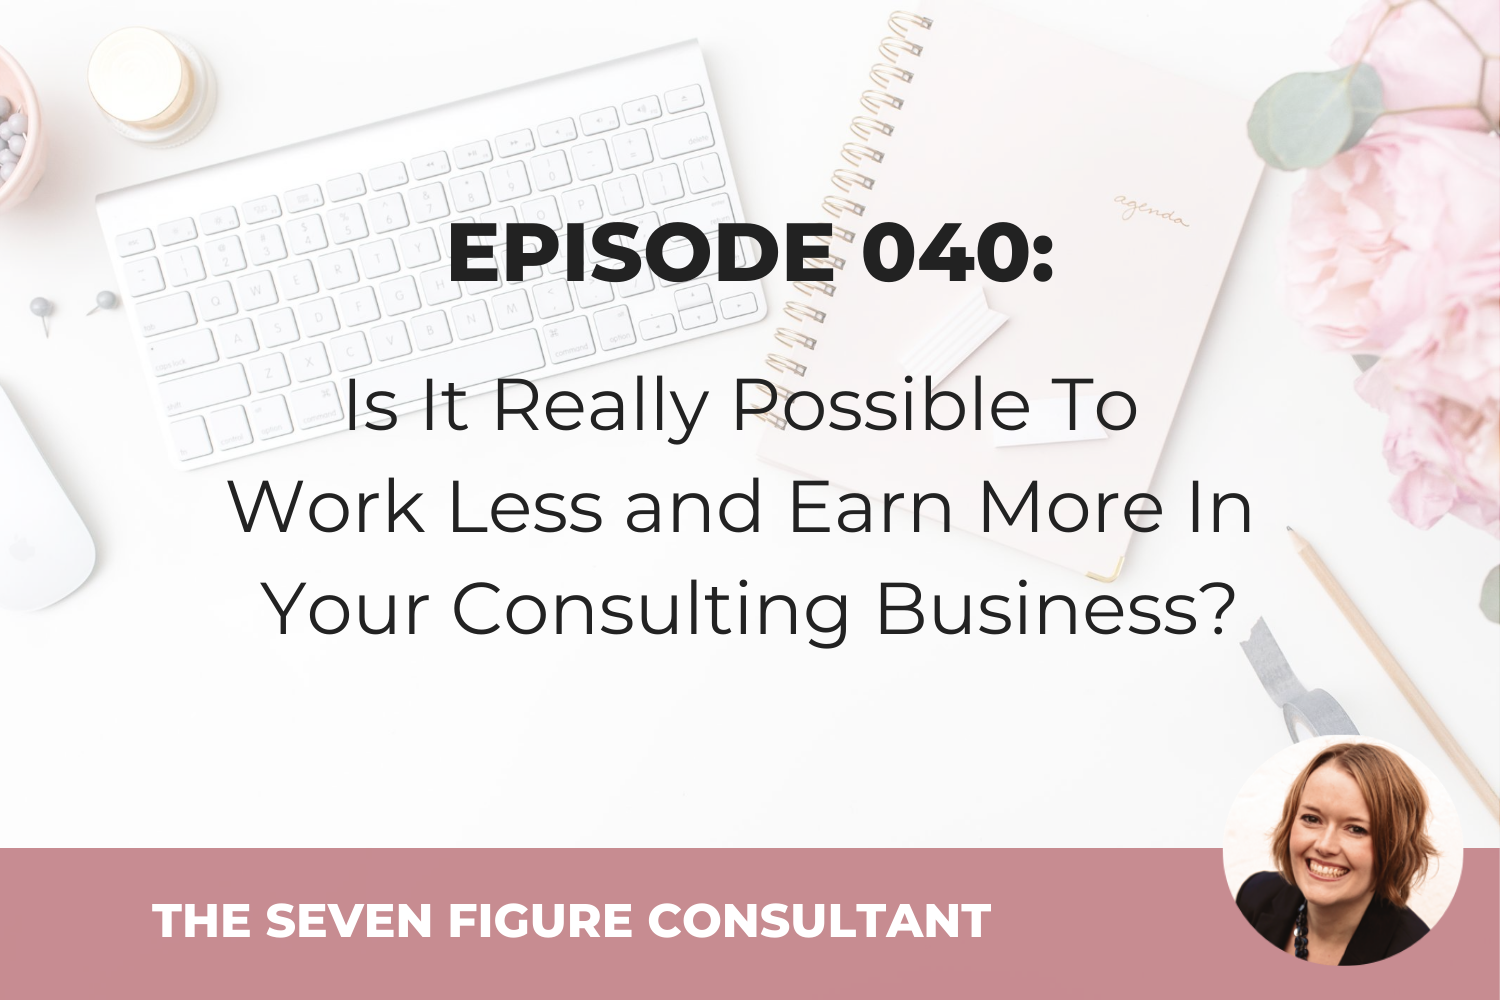 Episode 040: Is It Really Possible To Work Less and Earn More In Your Consulting Business?